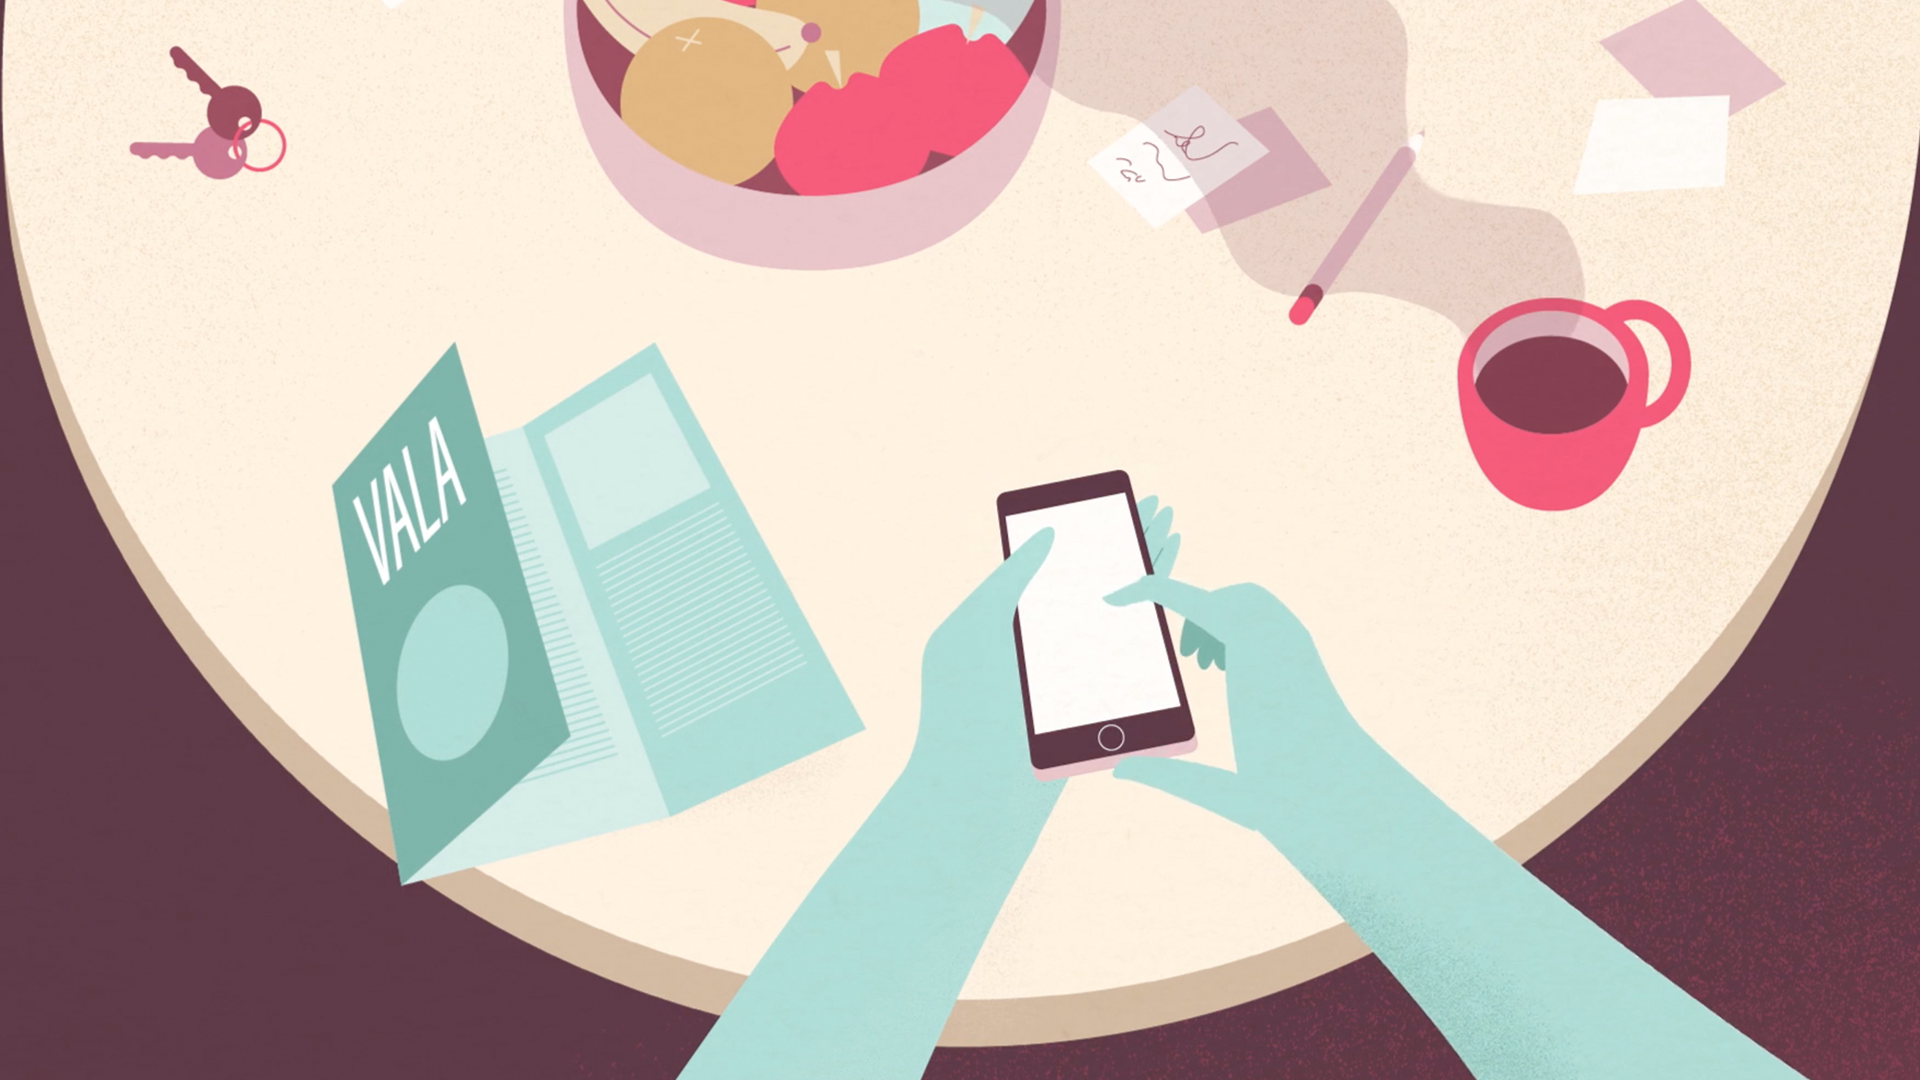 A style frame from an animated video, featuring hands of a person on their mobile phone above a table with fruit, coffee, a pencil and a steaming cup of coffee.